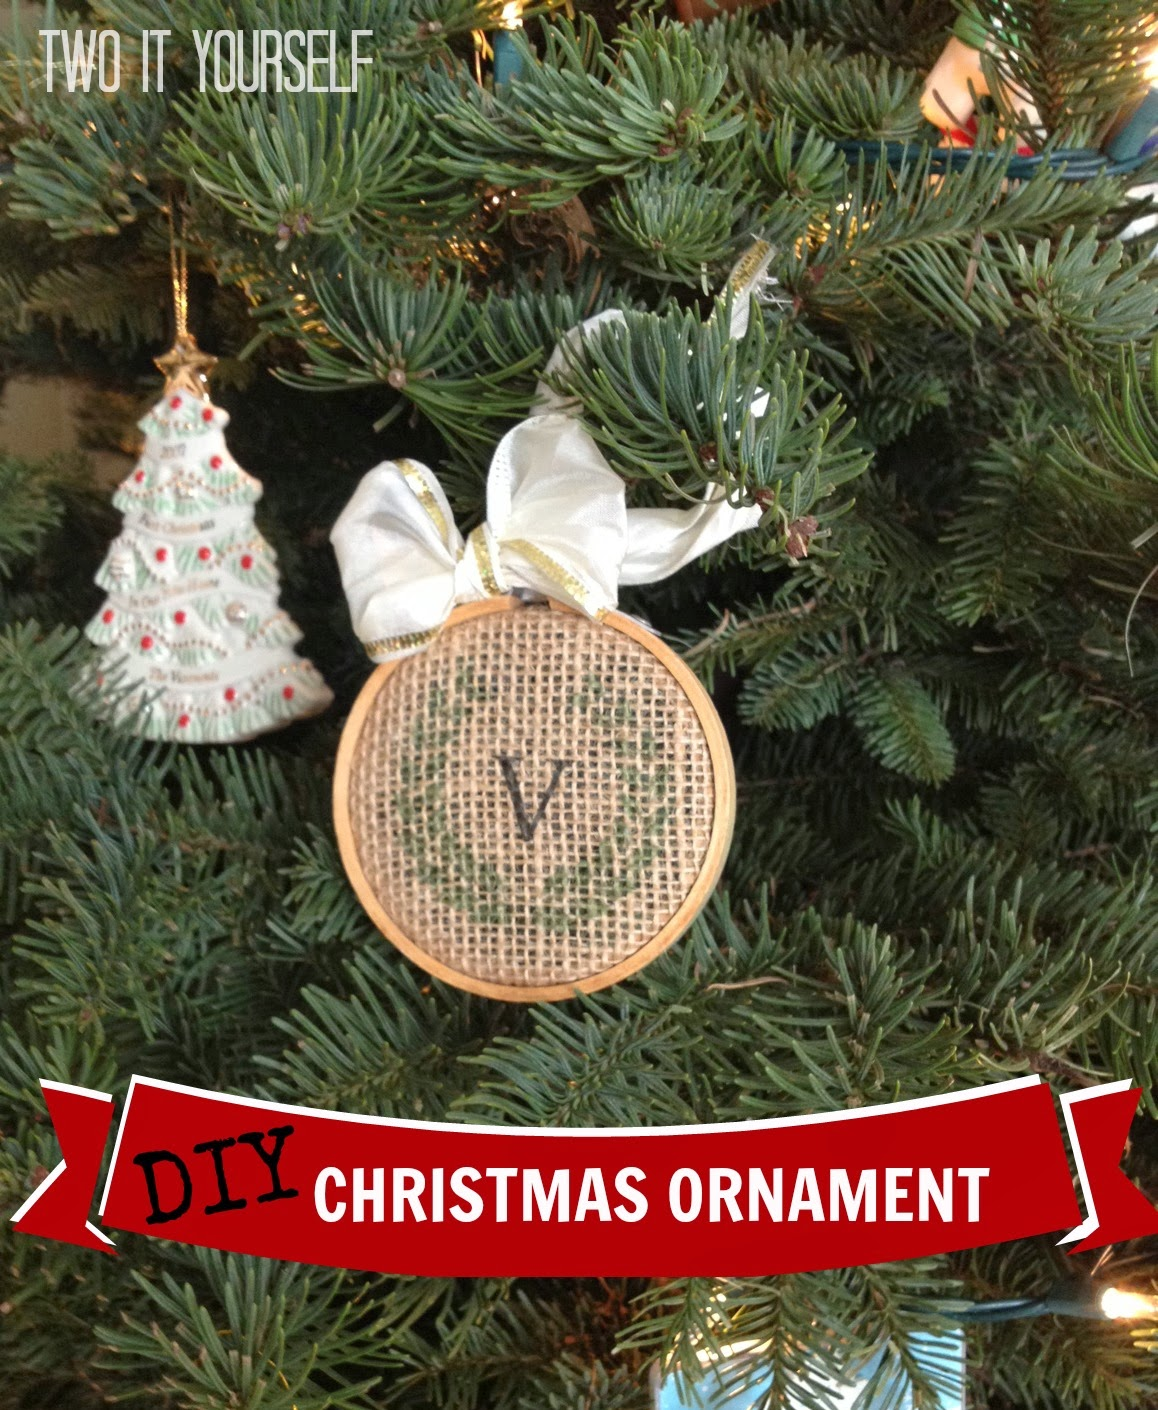 Two it yourself 10 minute diy christmas ornaments clearly i like to create and decorate but im not a big diy christmas ornament maker today however that changed i had about 10 spare minutes solutioingenieria Image collections